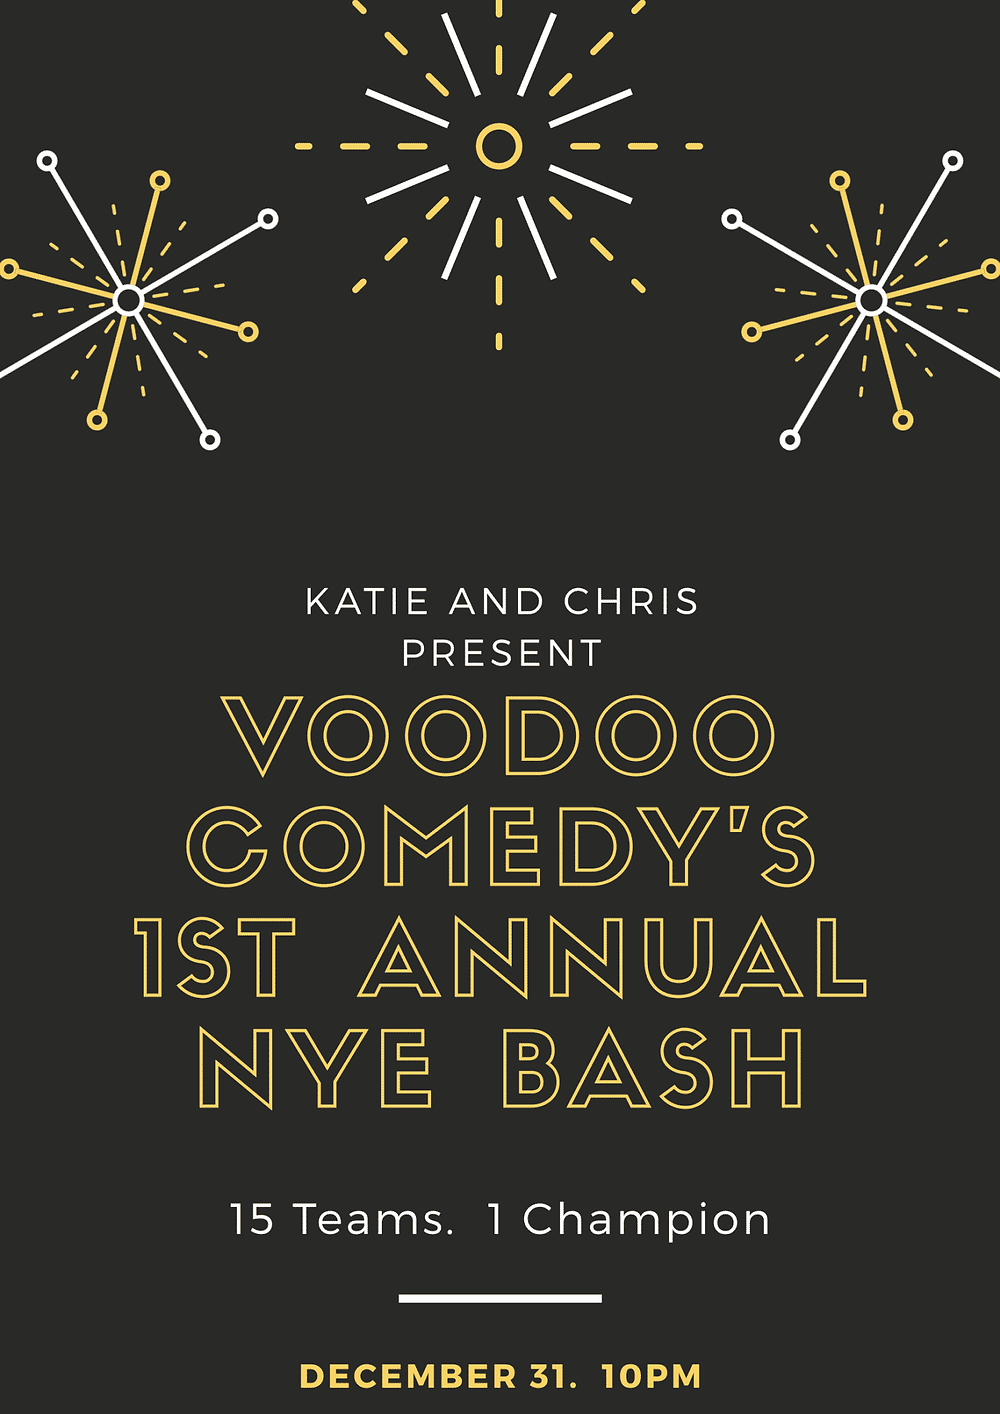 Voodoo Comedy's 1st Annual NYE Bash